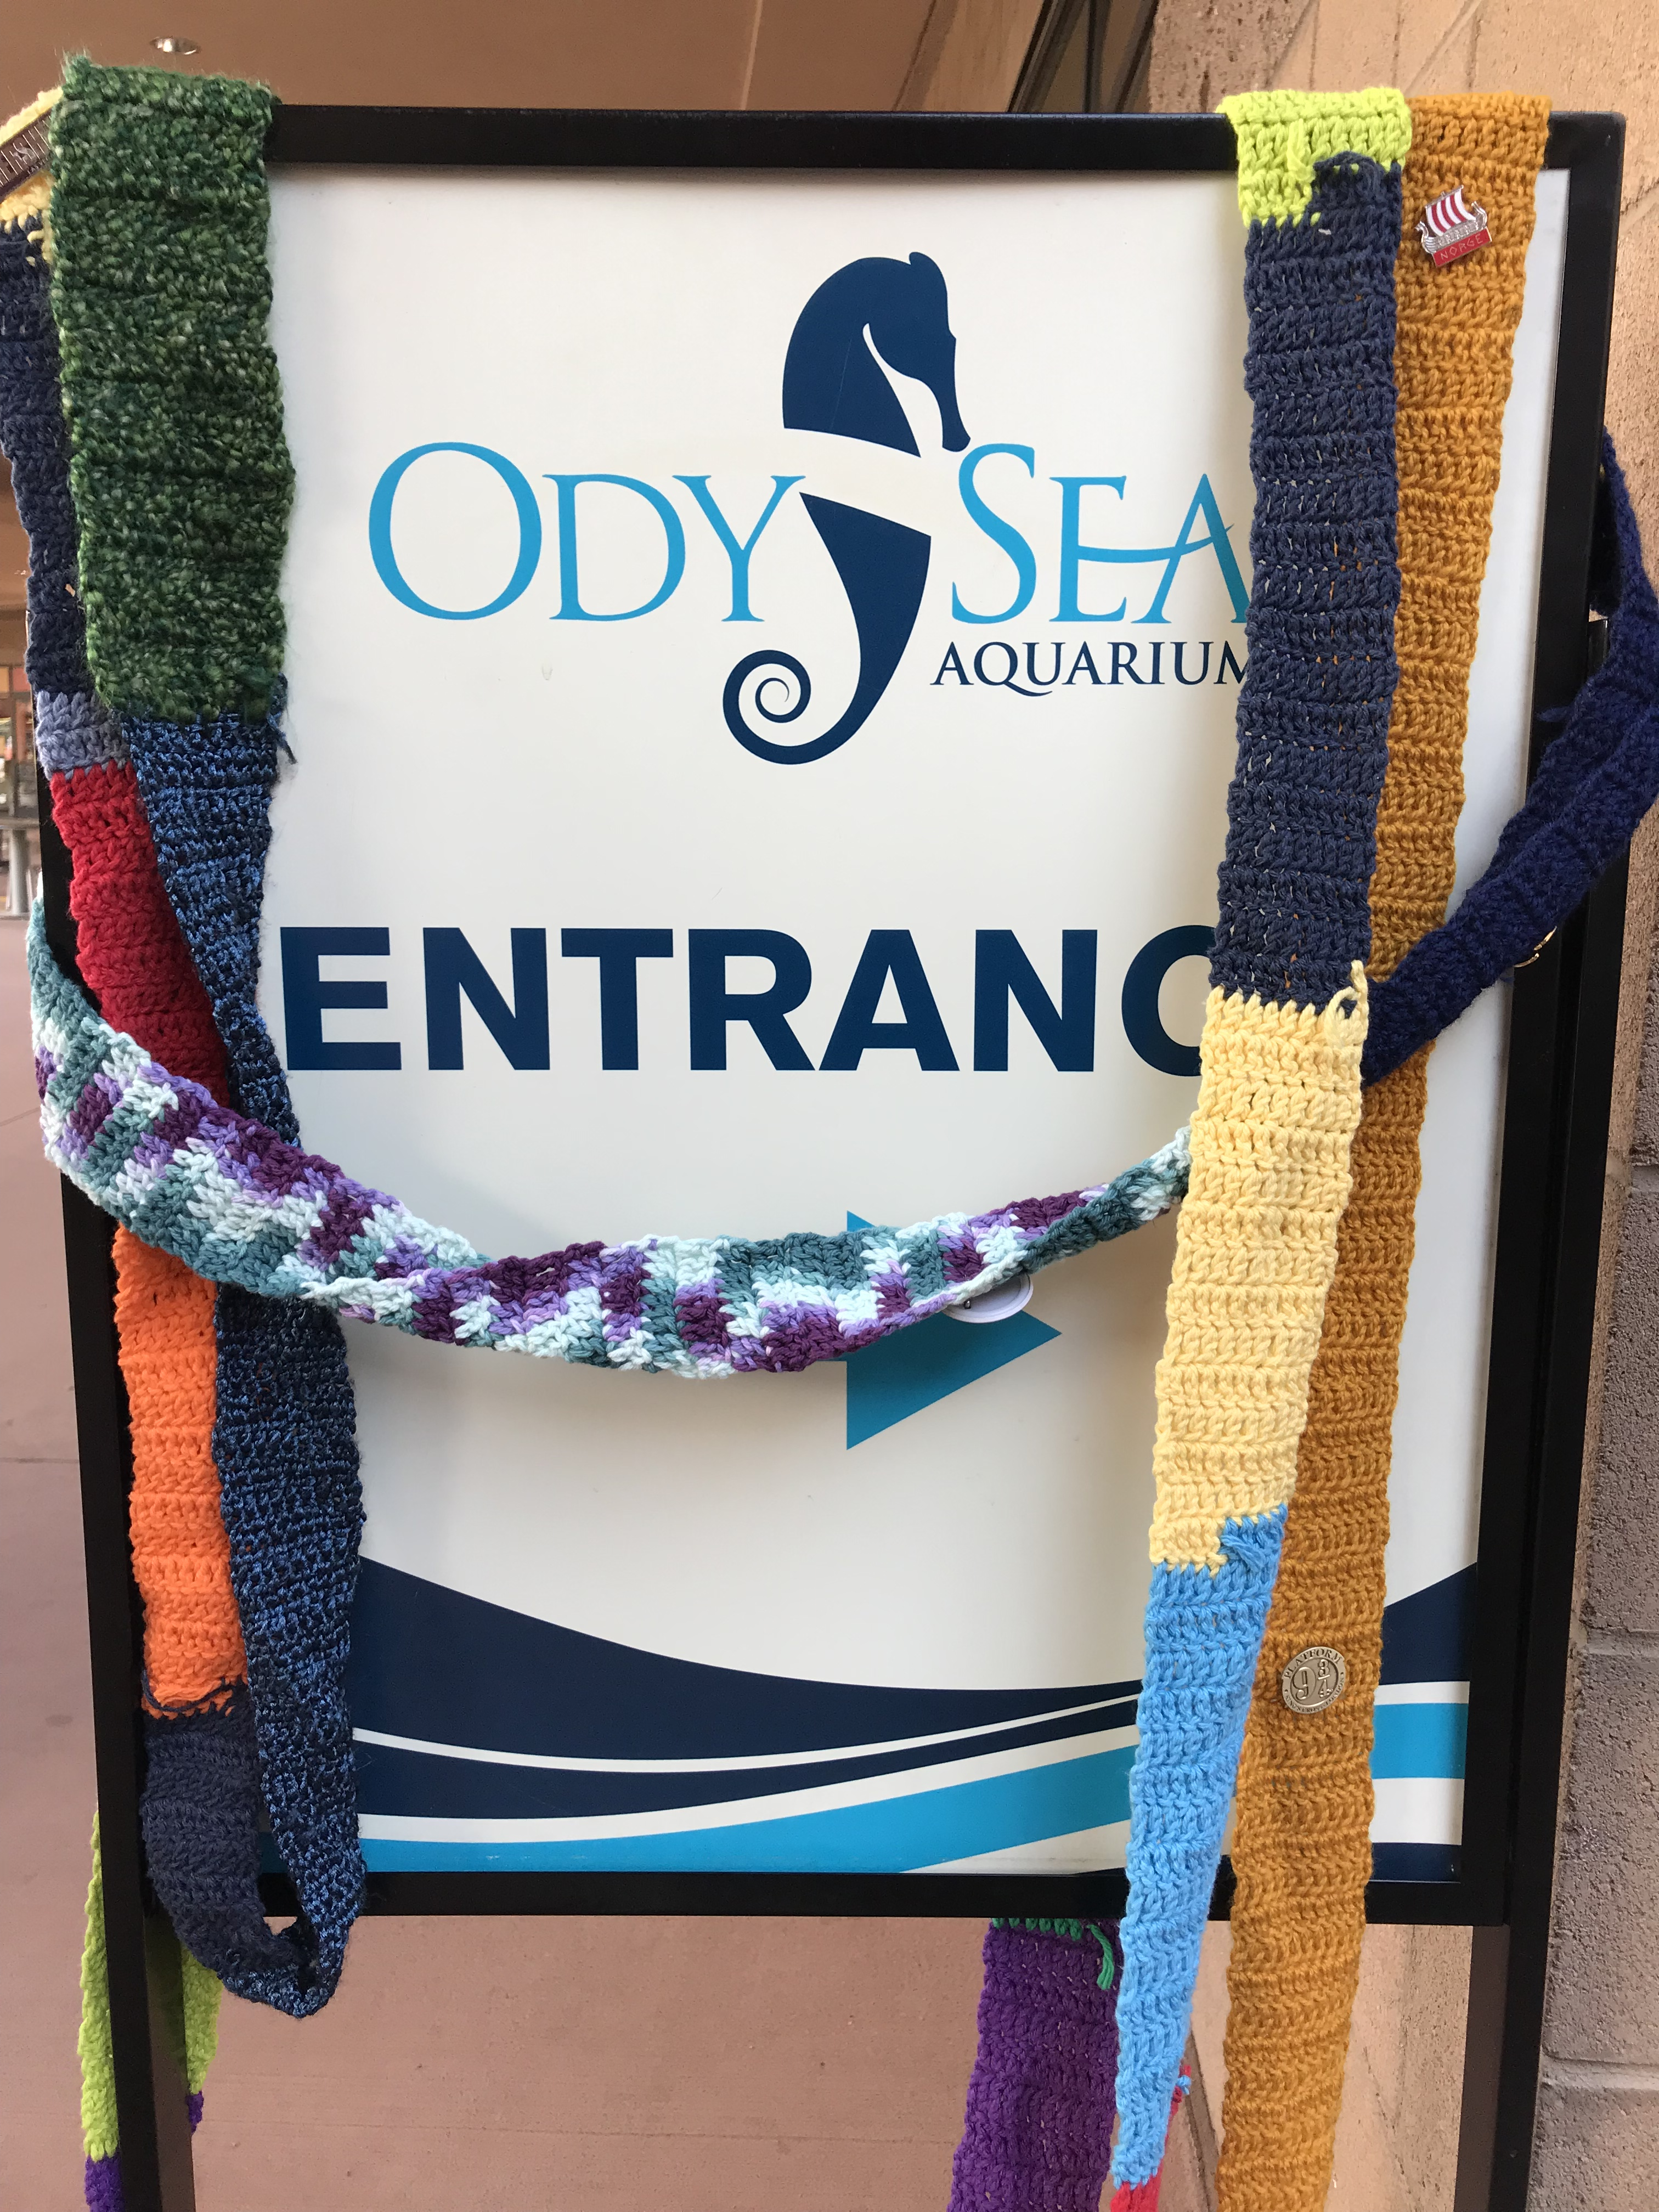 The Ugly Scarf at the OdySea Aquarium